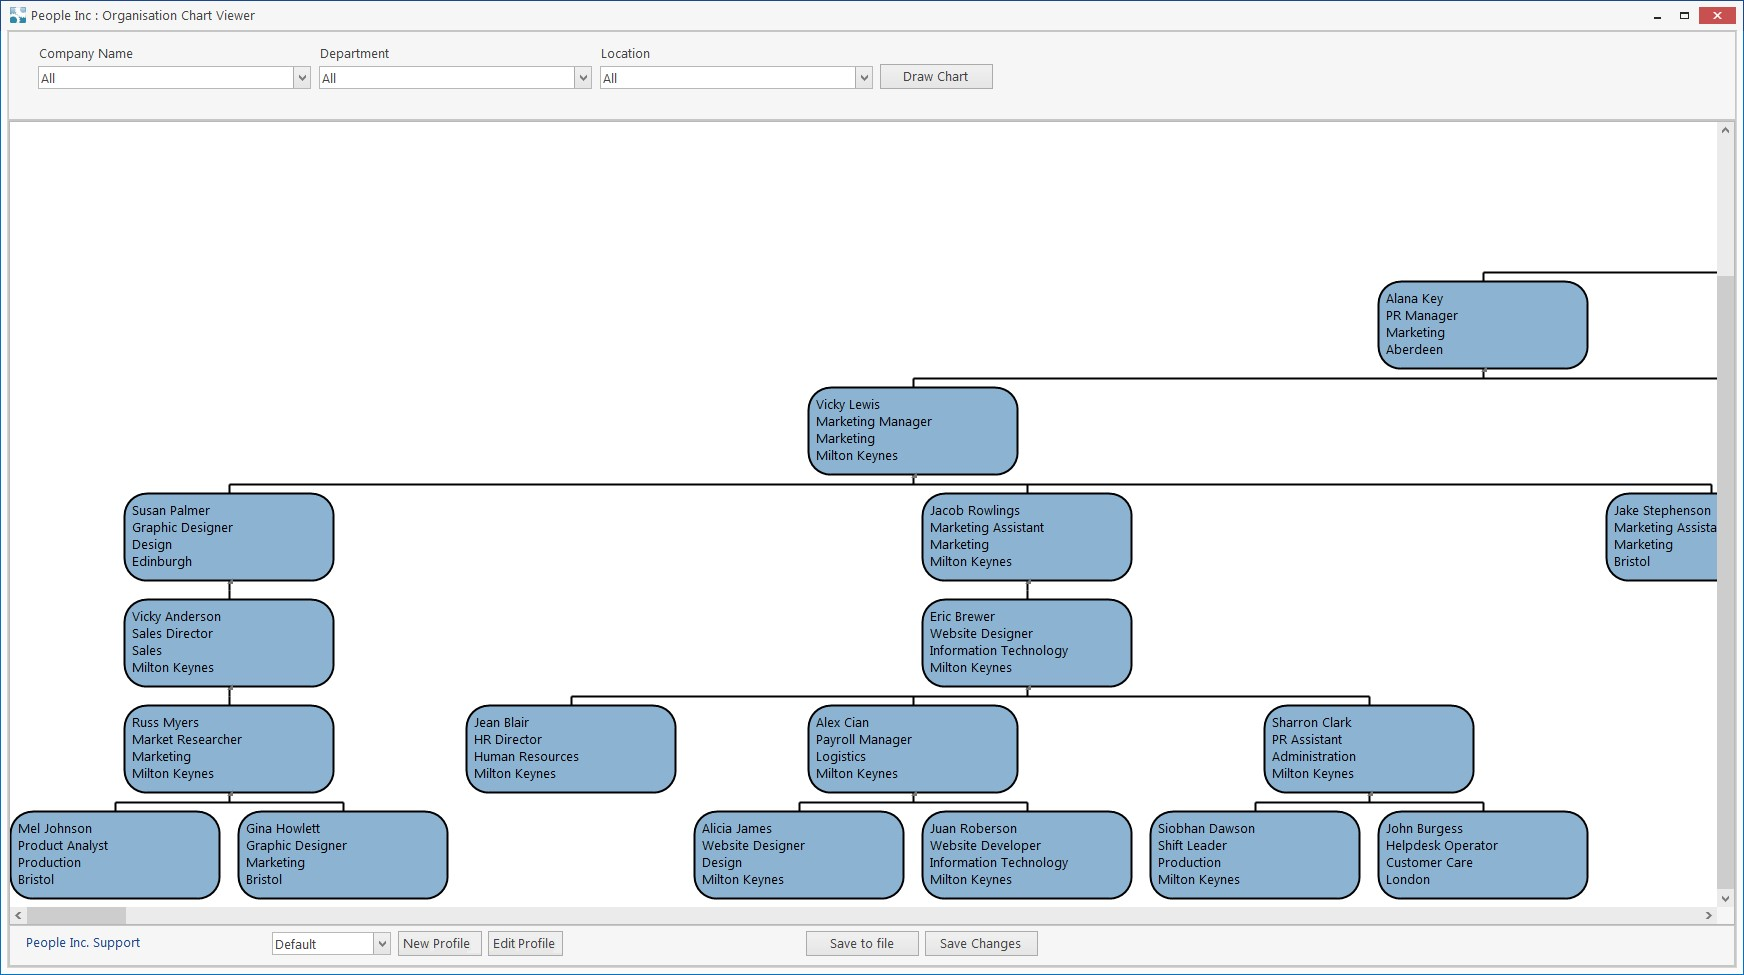 Organisation chart generated by the People Inc hr system displaying hierarchy of employees including their employment details, buttons indicate additional options and functionality related to the chart